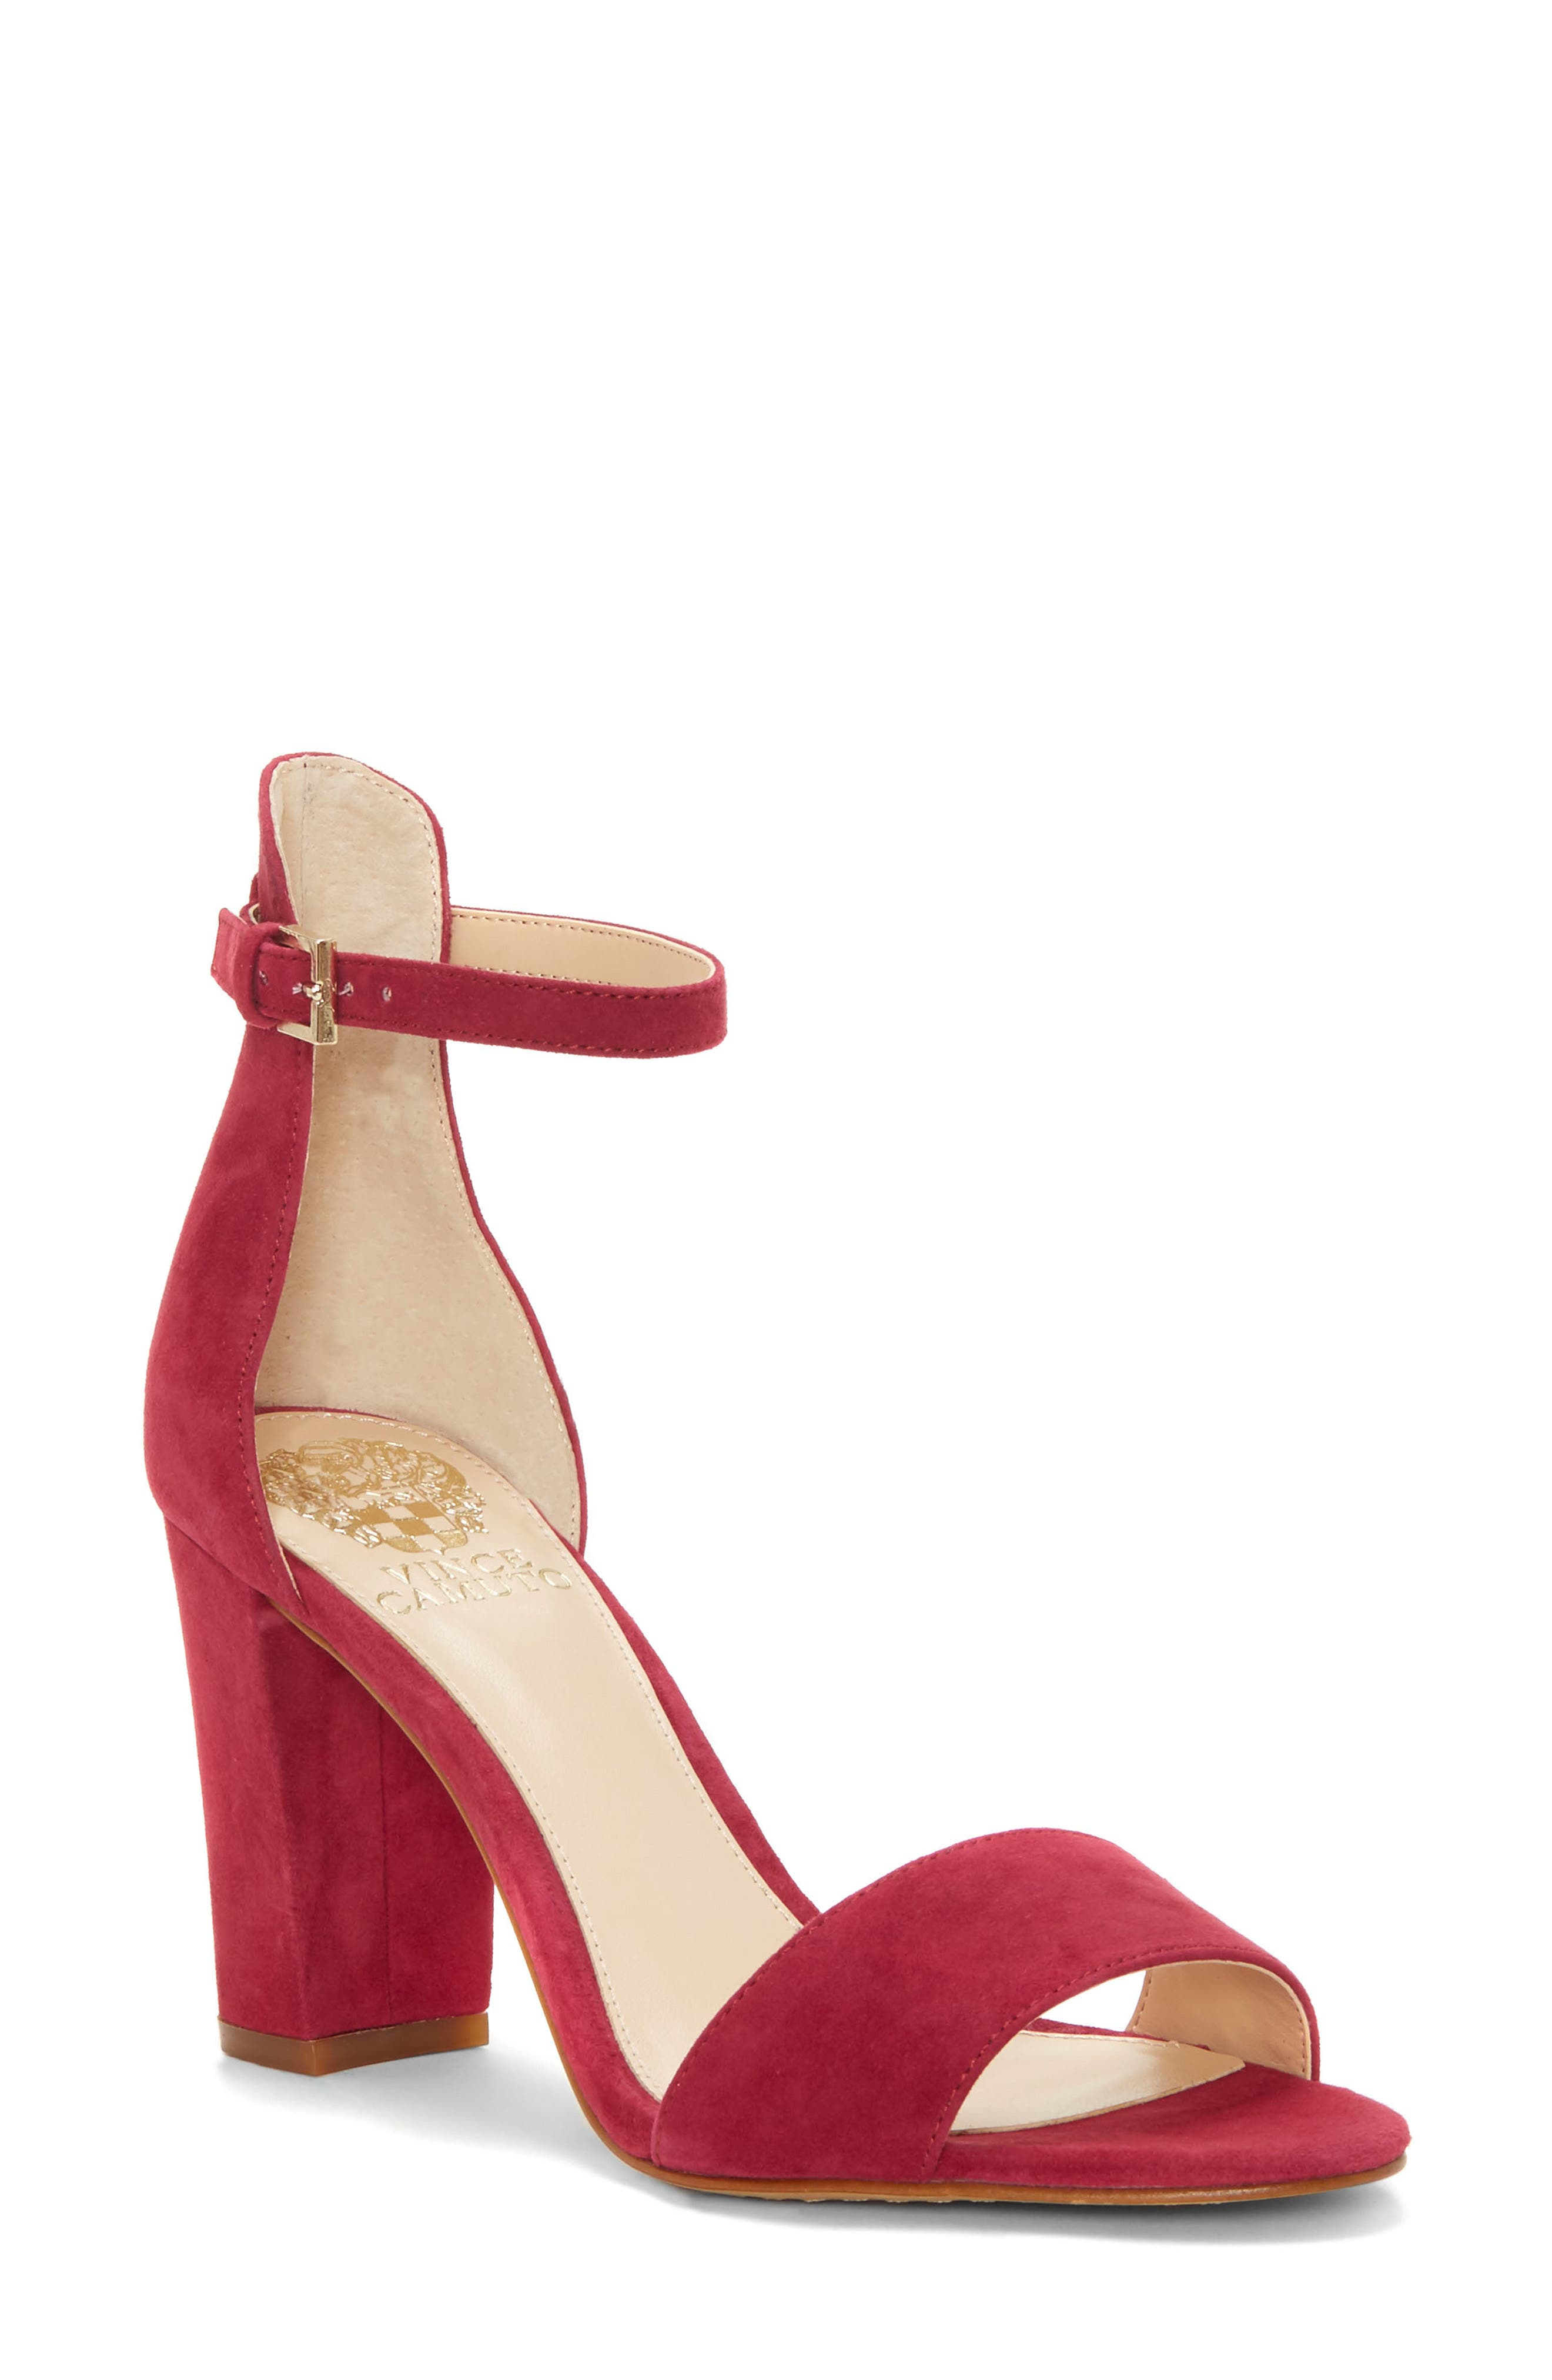 Corlina Ankle Strap Sandal,                         Main,                         color, SWEET BERRY SUEDE